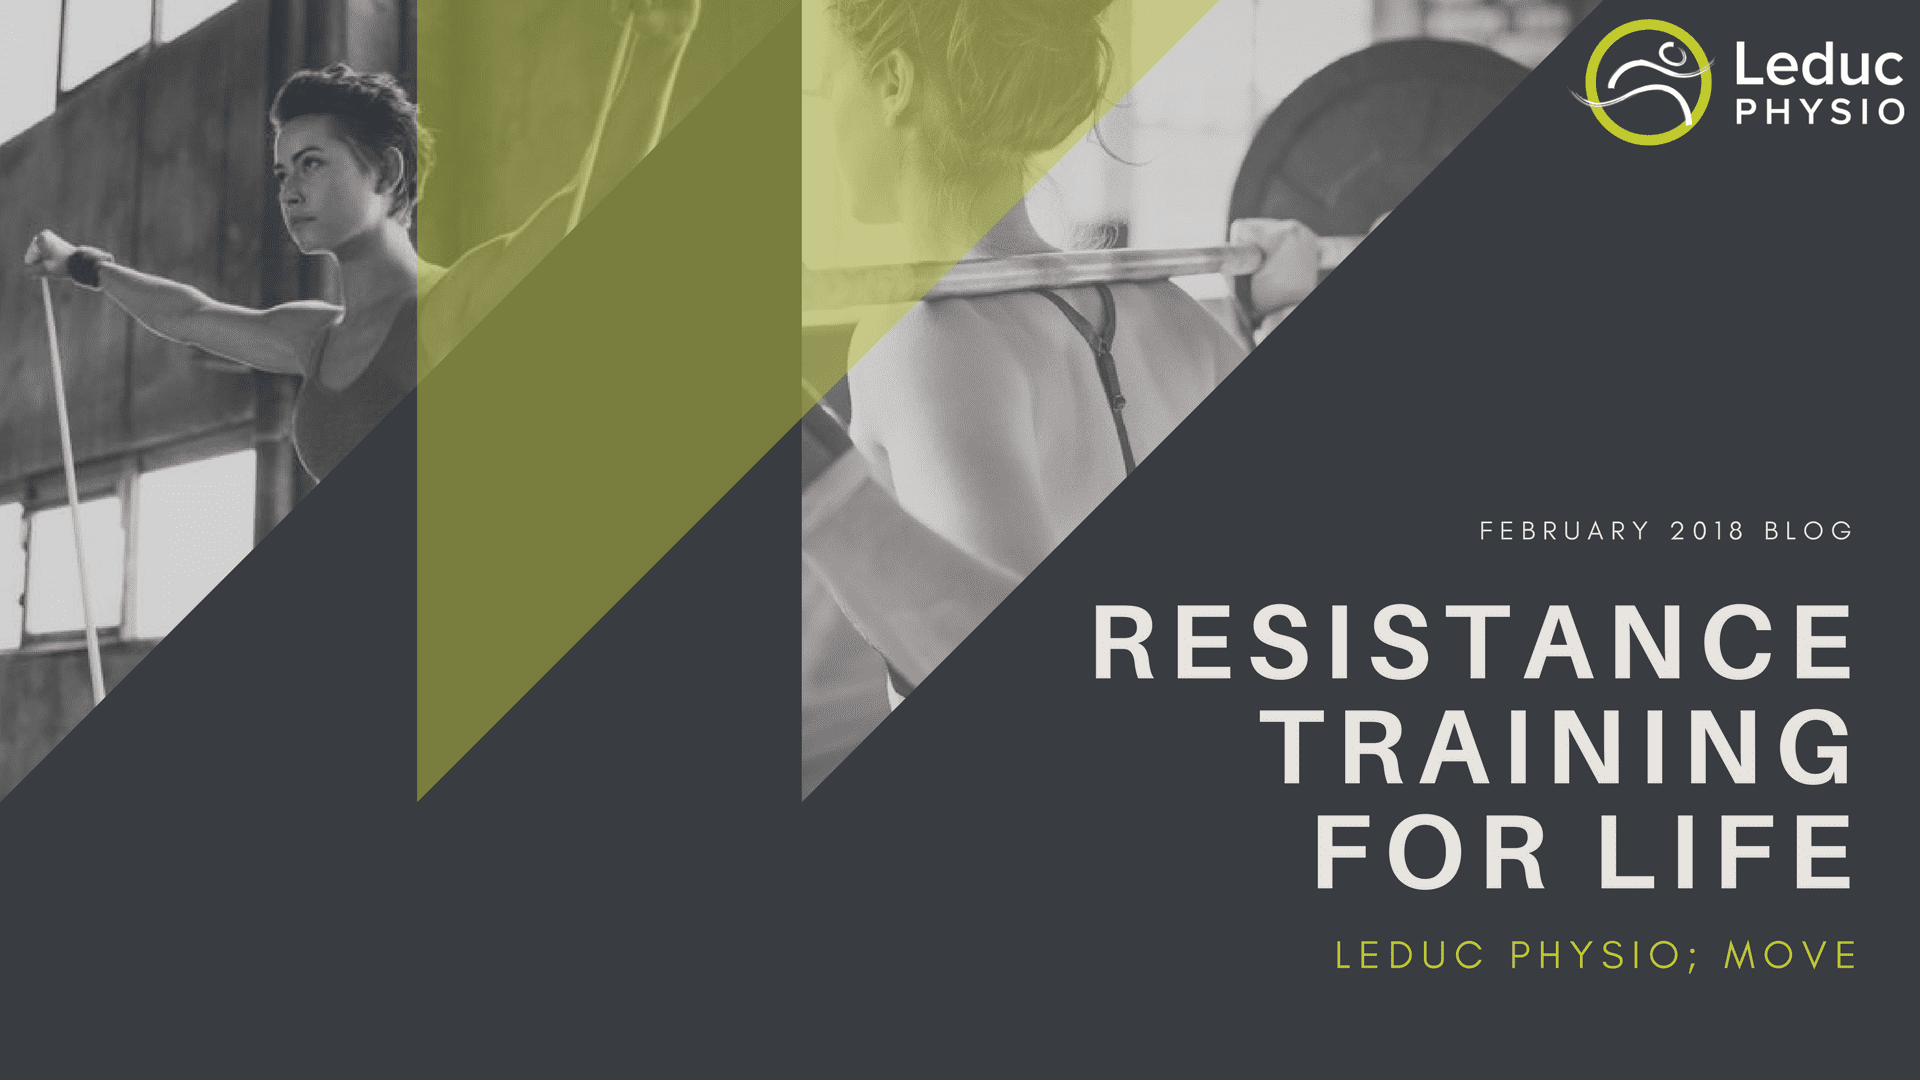 Newsletter-Image-for-Blog2FArticle Resistance Training for Life band elastic exercise Hailey Hutzul kinesiology mobility muslces physiotherapy pre-cut theraband program rehabilitate resistance resistance bands strengthen theraband tubing